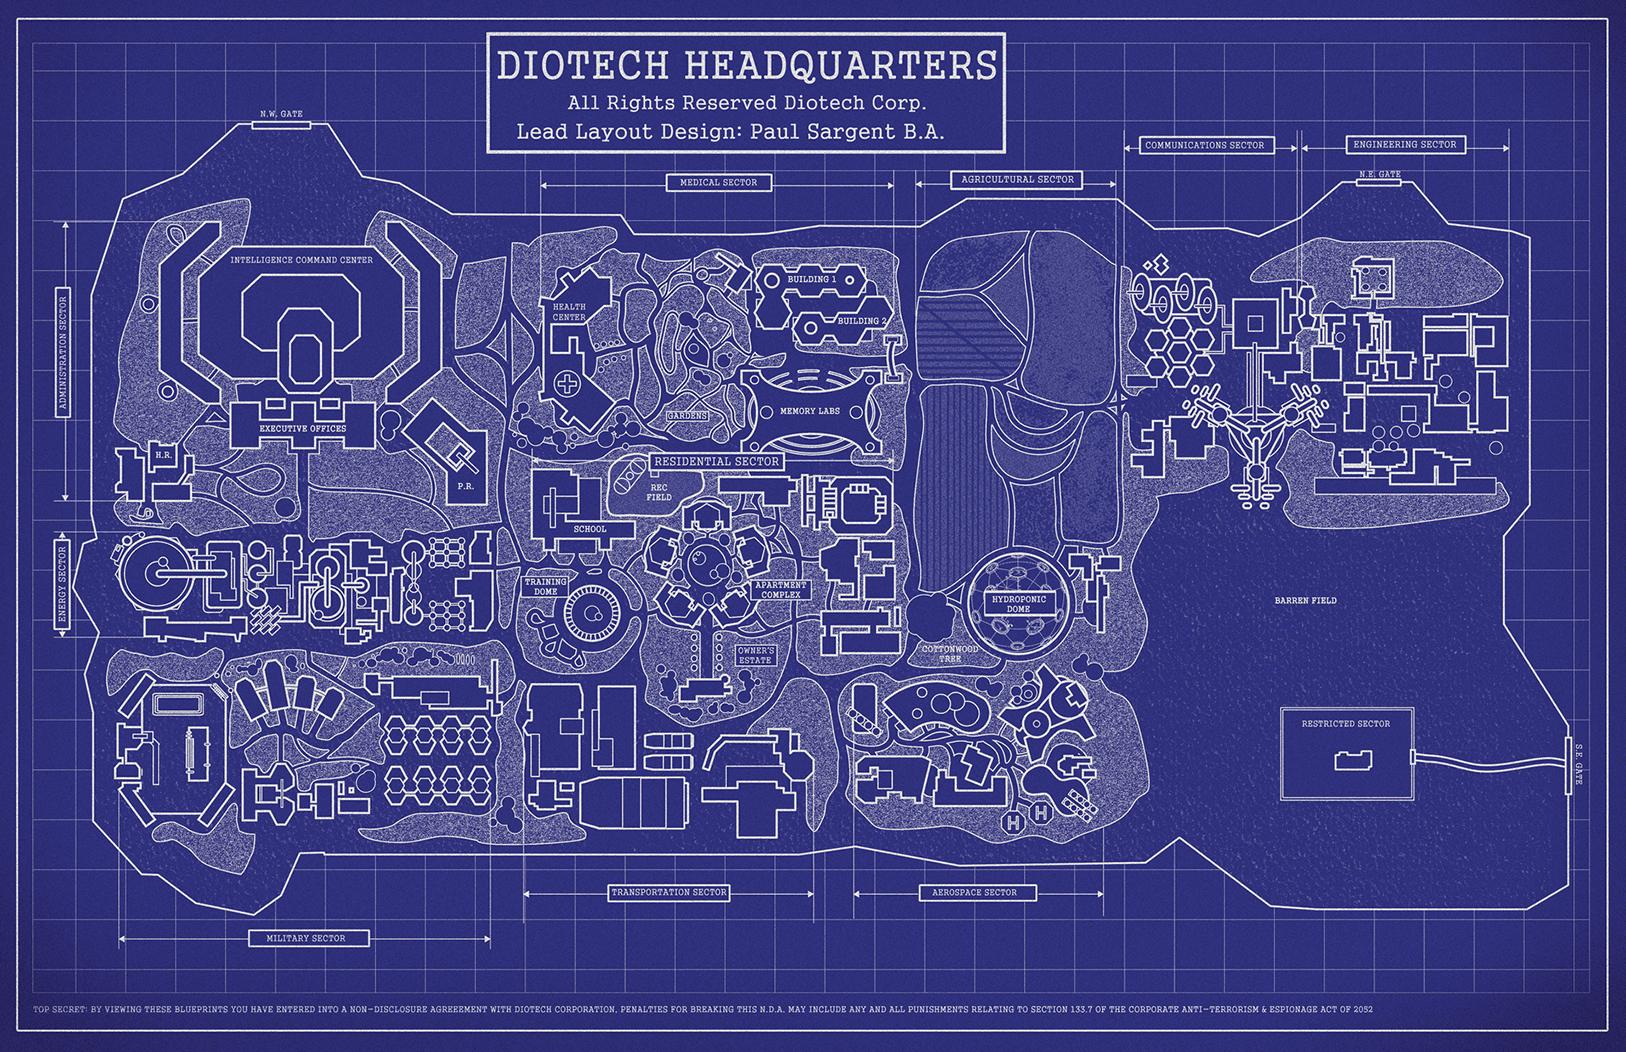 jessica brody confiscated secret blueprints for the diotech compound